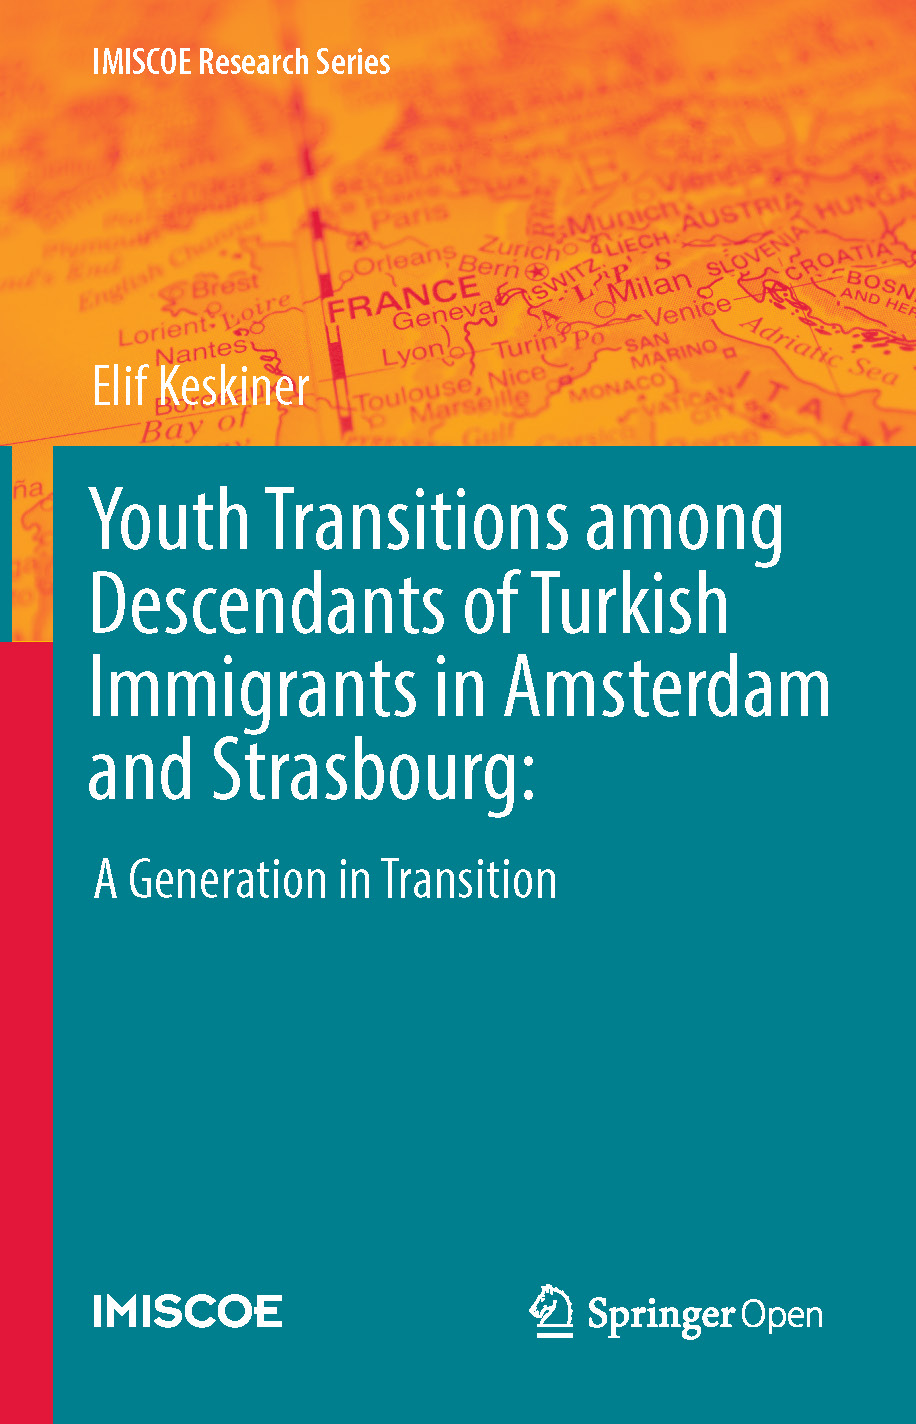 Cover of Youth Transitions among Descendants of Turkish Immigrants in Amsterdam and Strasbourg: